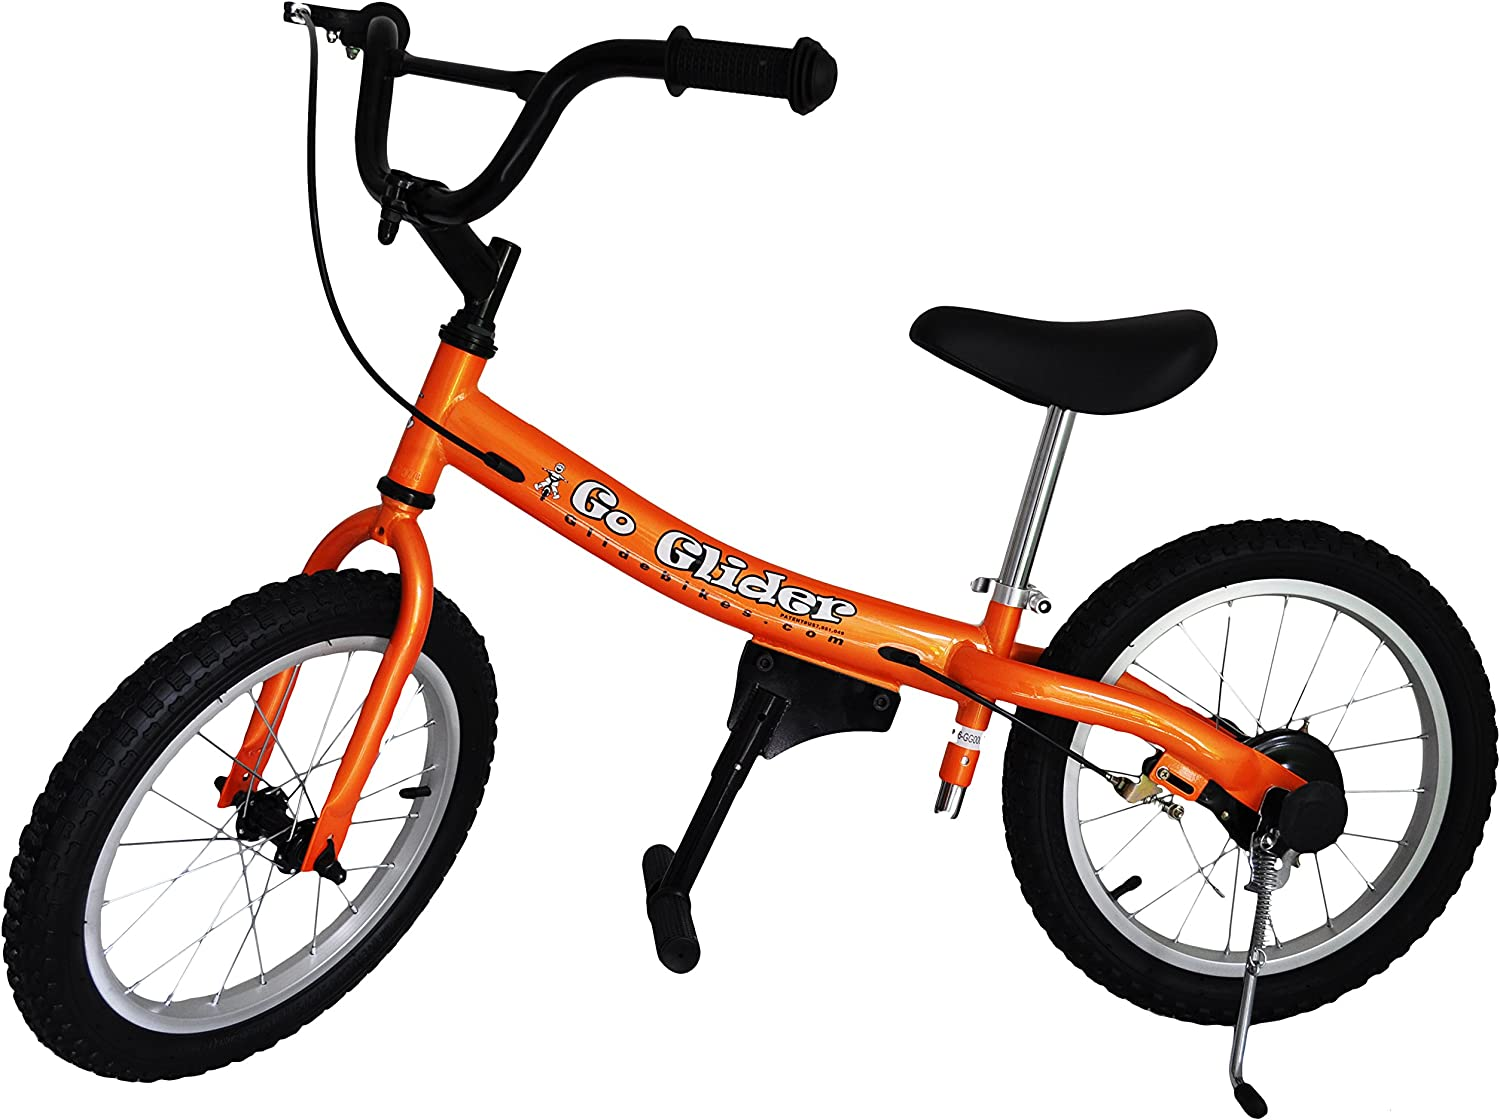 Glide Bikes Kid's Go Glider Balance Bike, Orange, 16-Inch: Sports & Outdoors